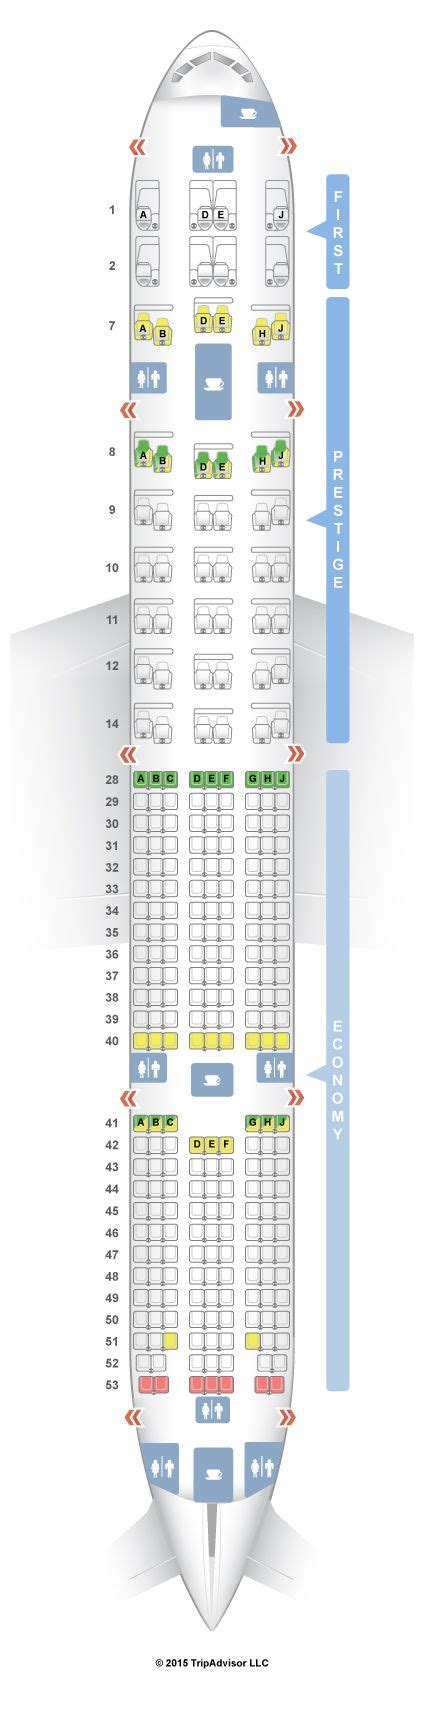 plan si鑒es boeing 777 300er 25 best ideas about boeing 777 300er seating on